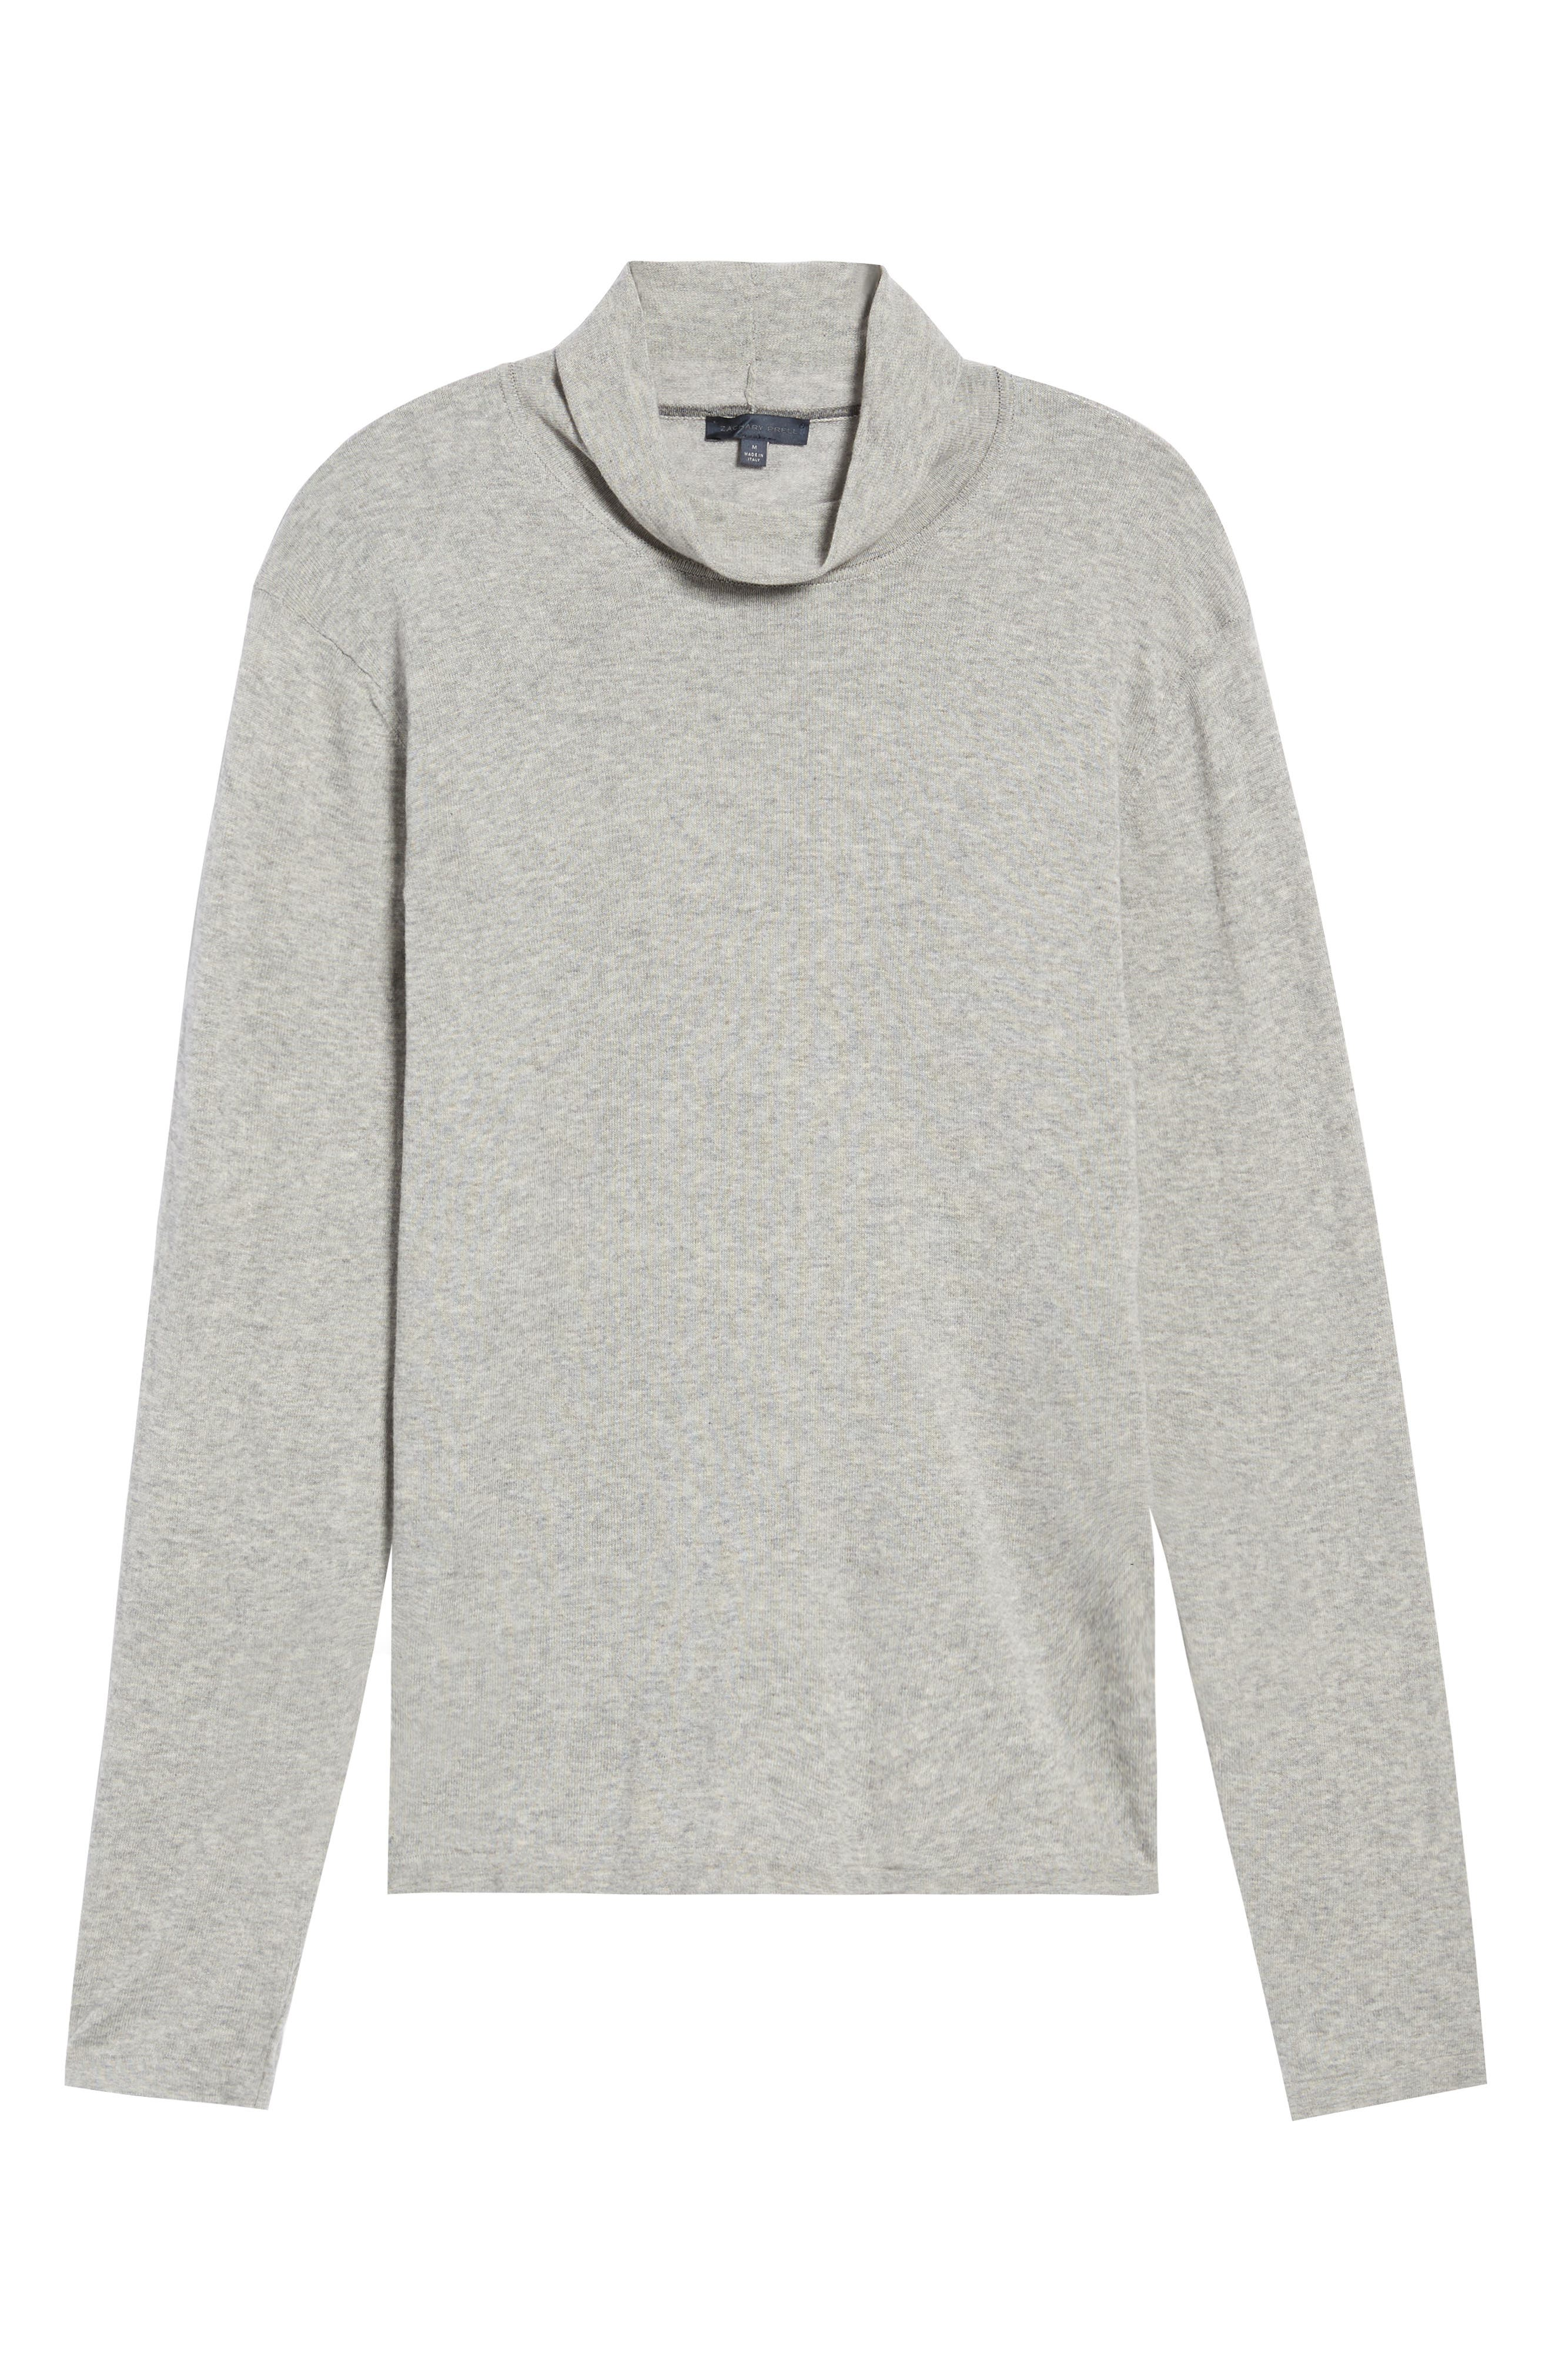 Hess Wool Turtleneck Sweater,                             Alternate thumbnail 6, color,                             Light Grey